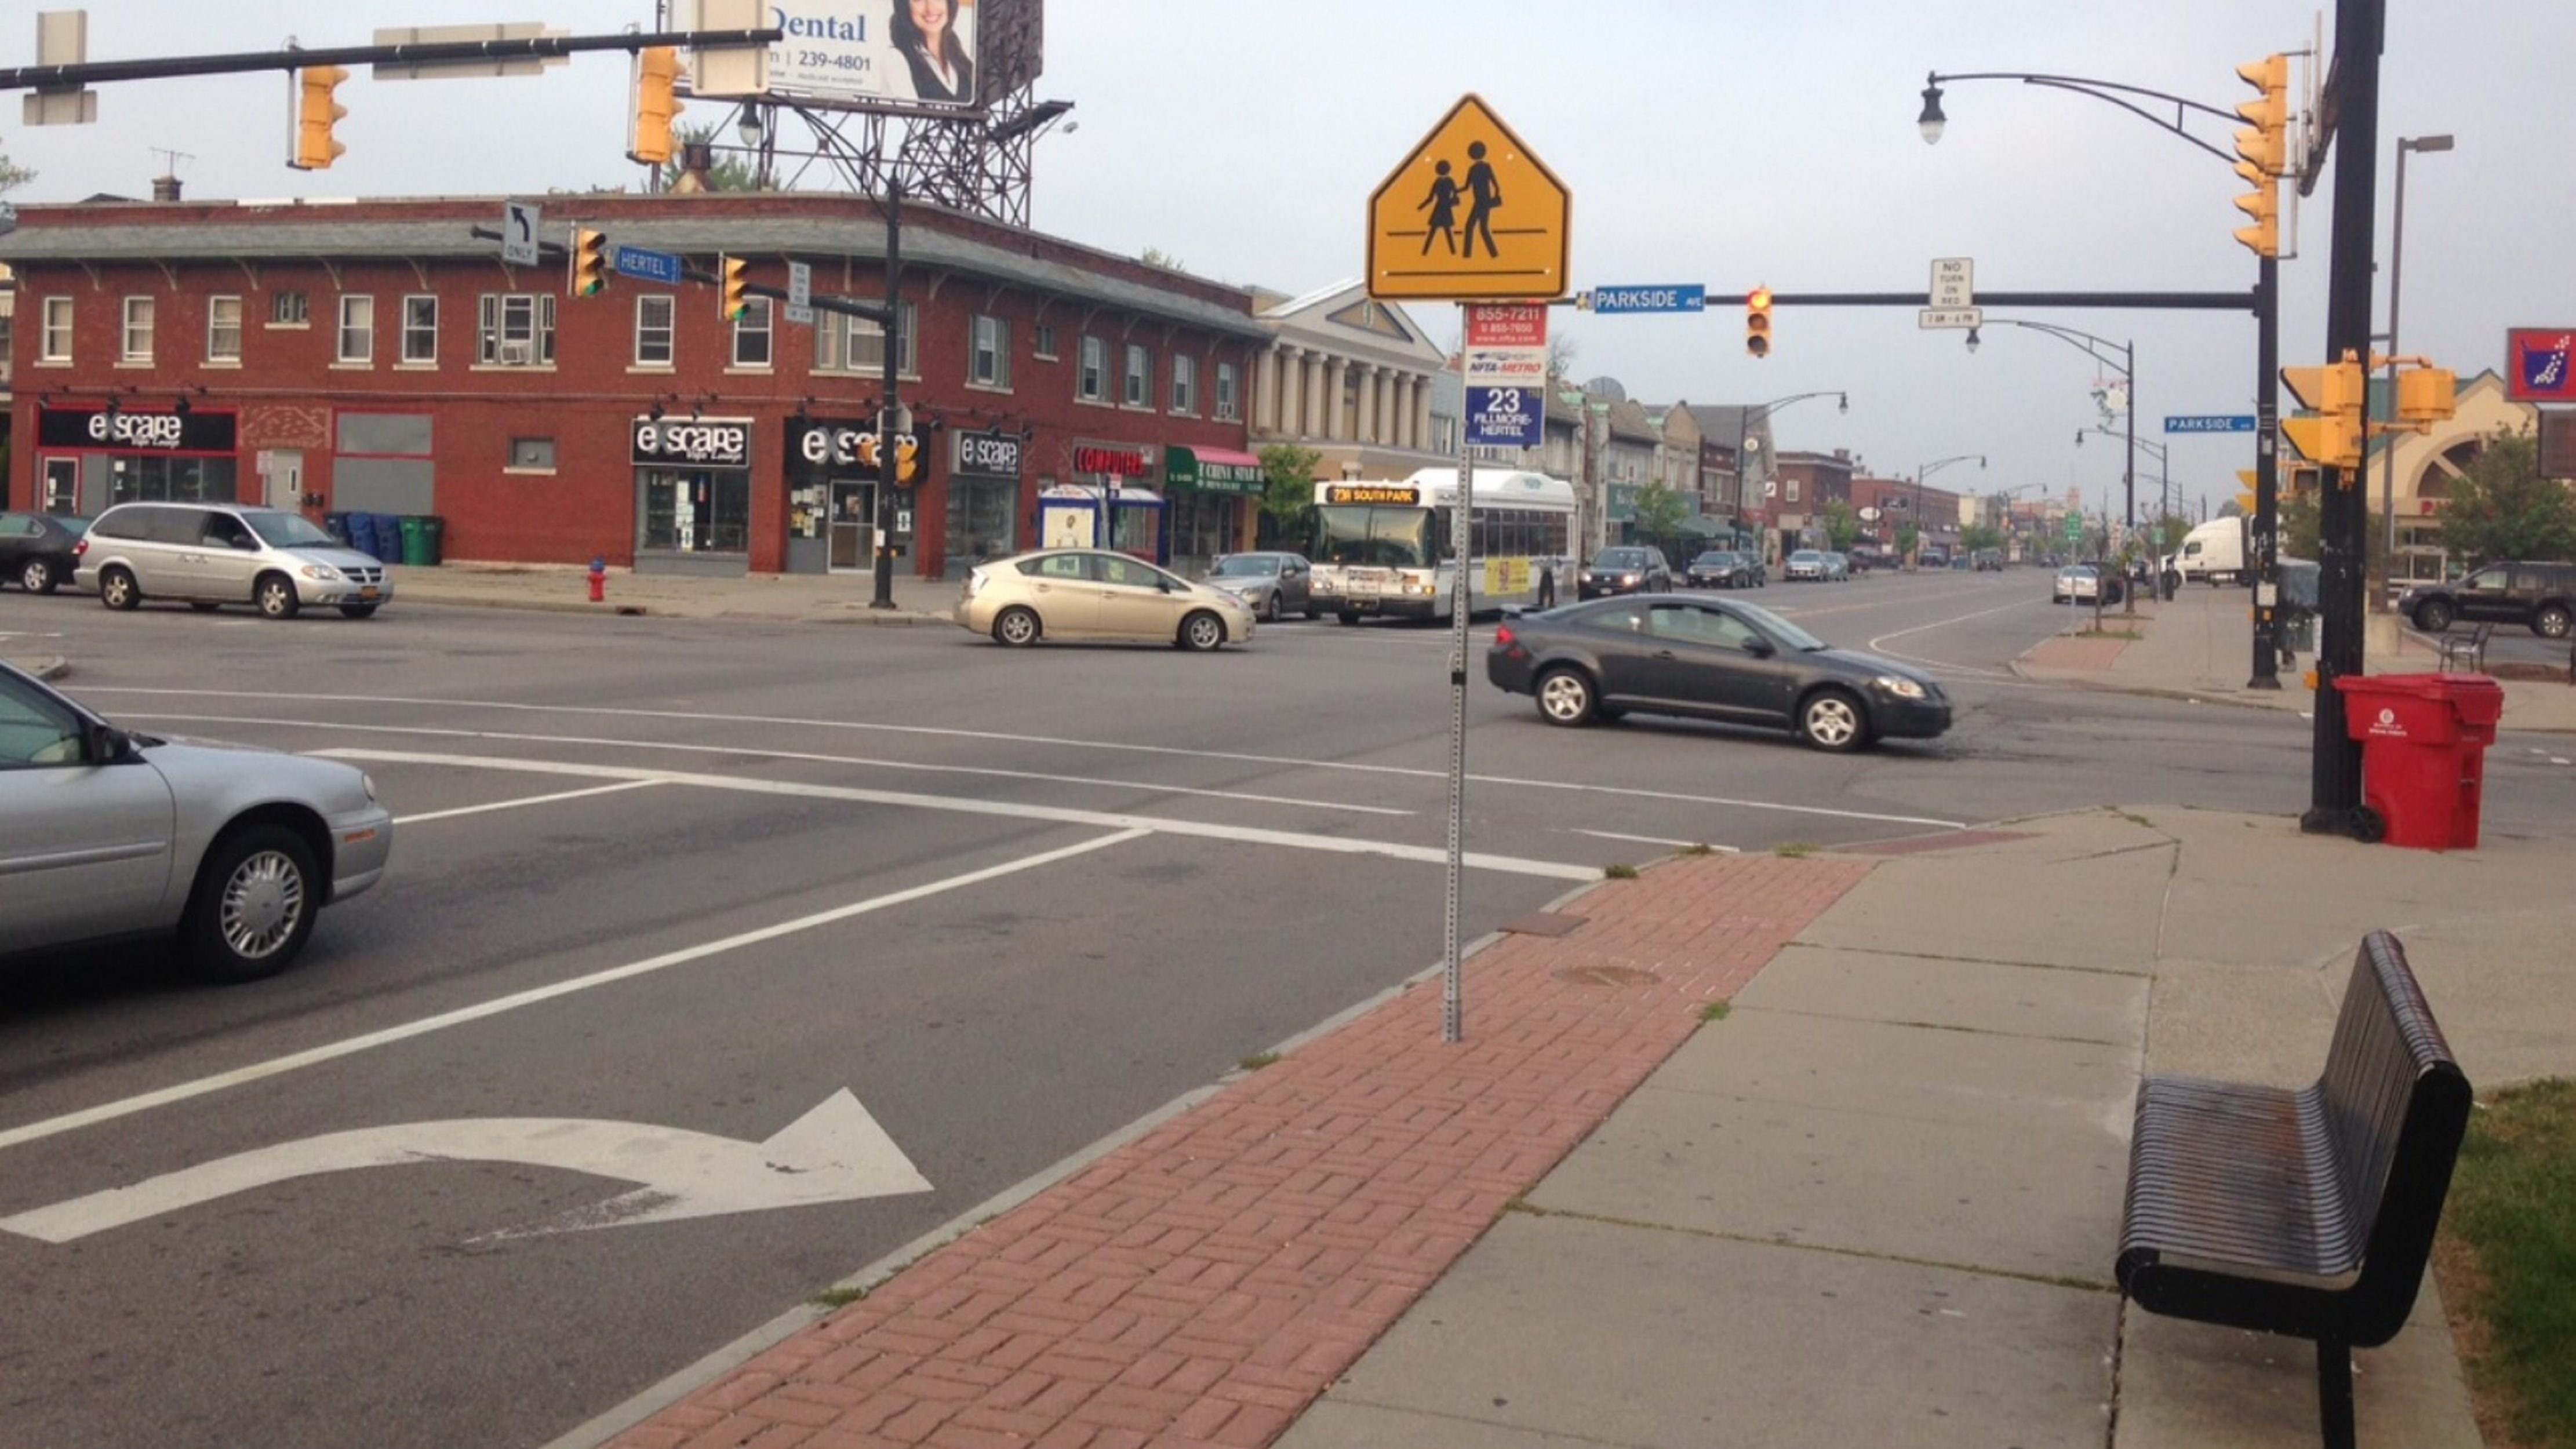 The scene at the intersection of Hertel and Parkside on Tuesday morning.